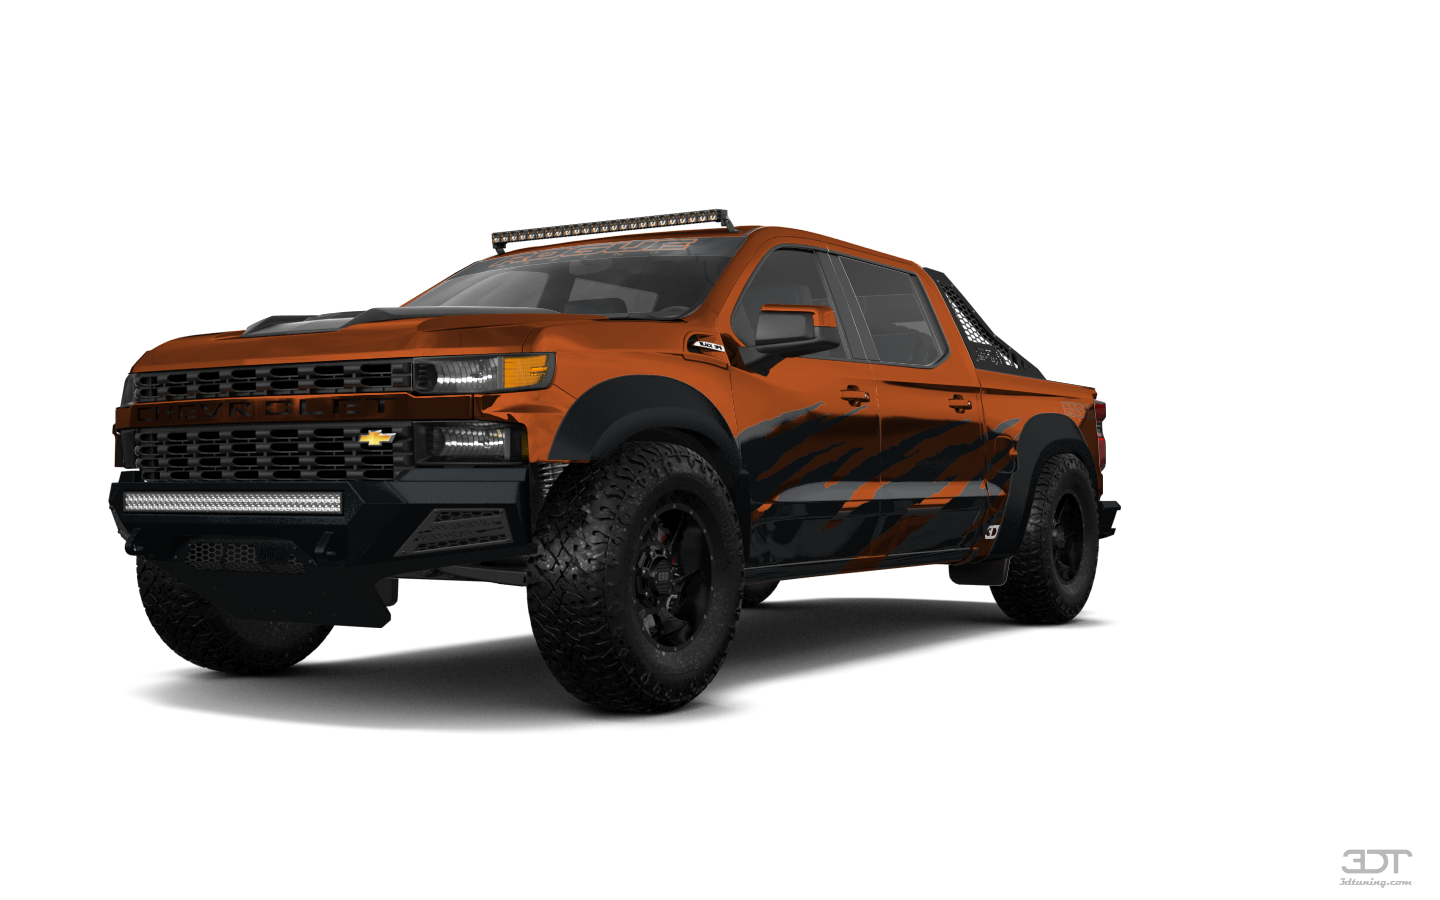 Chevrolet Silverado 1500 4 Door pickup truck 2019 tuning